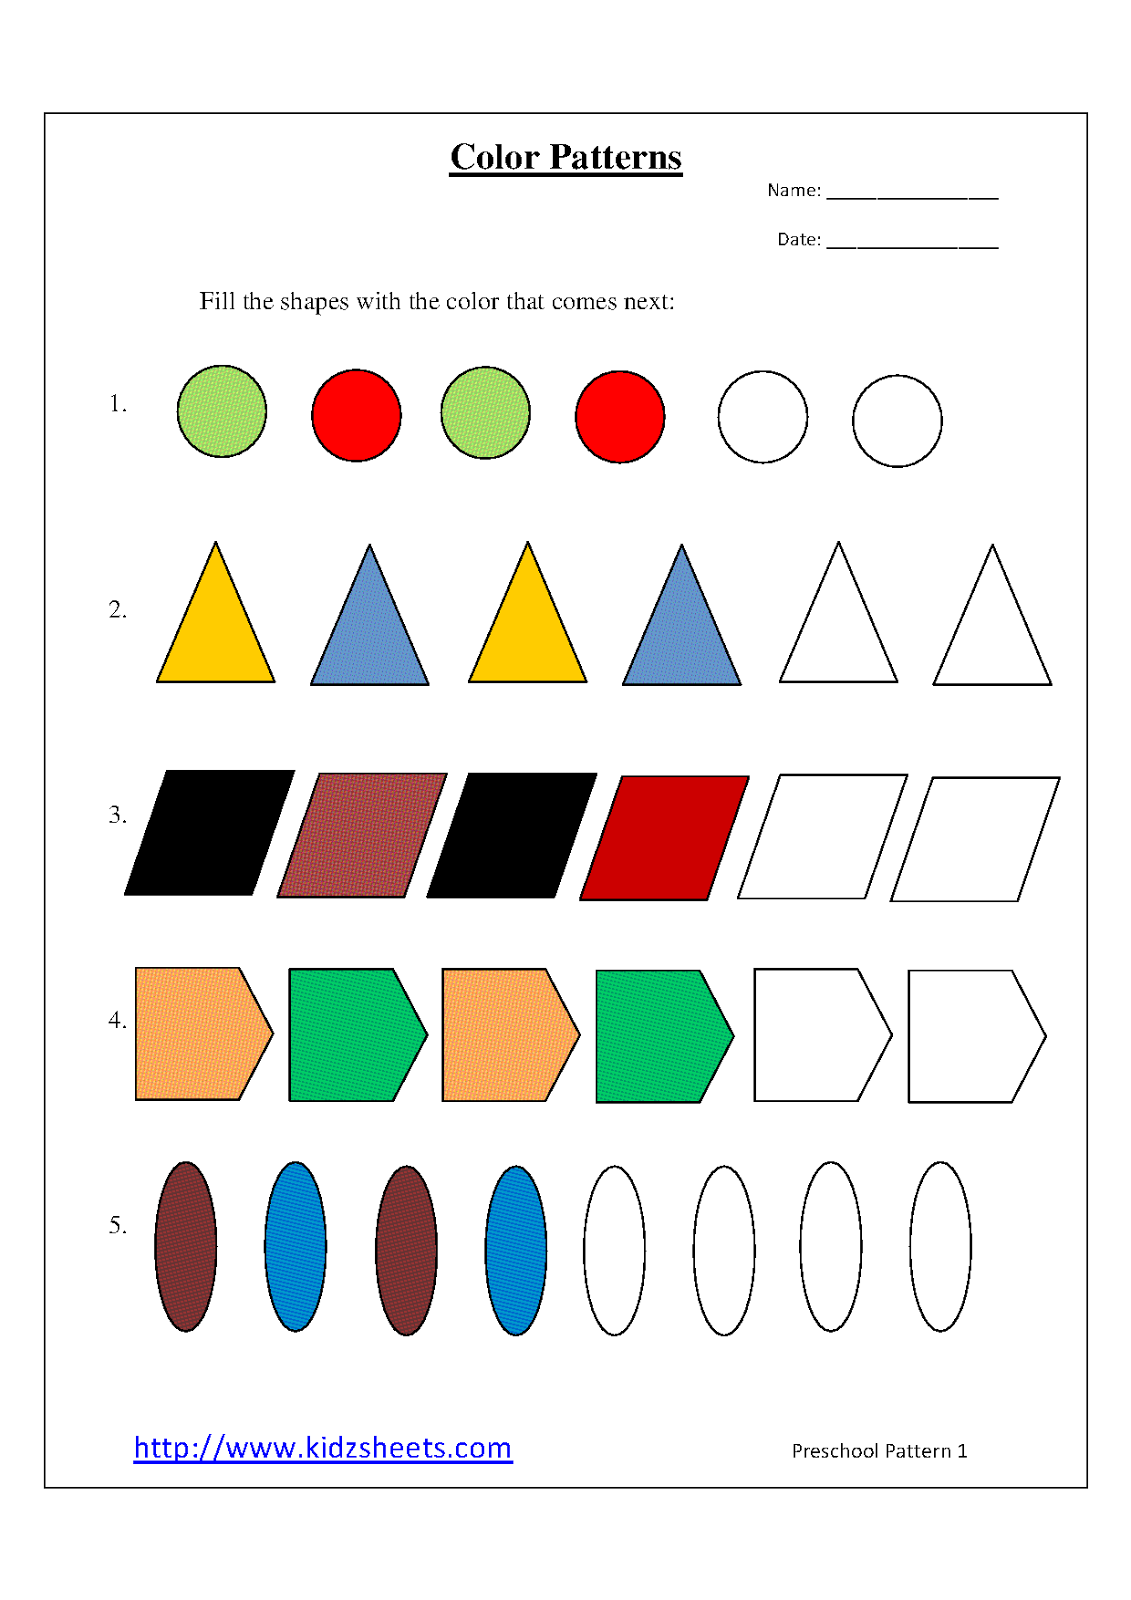 Kidz Worksheets Preschool Color Patterns Worksheet1 – Pattern Maths Worksheets